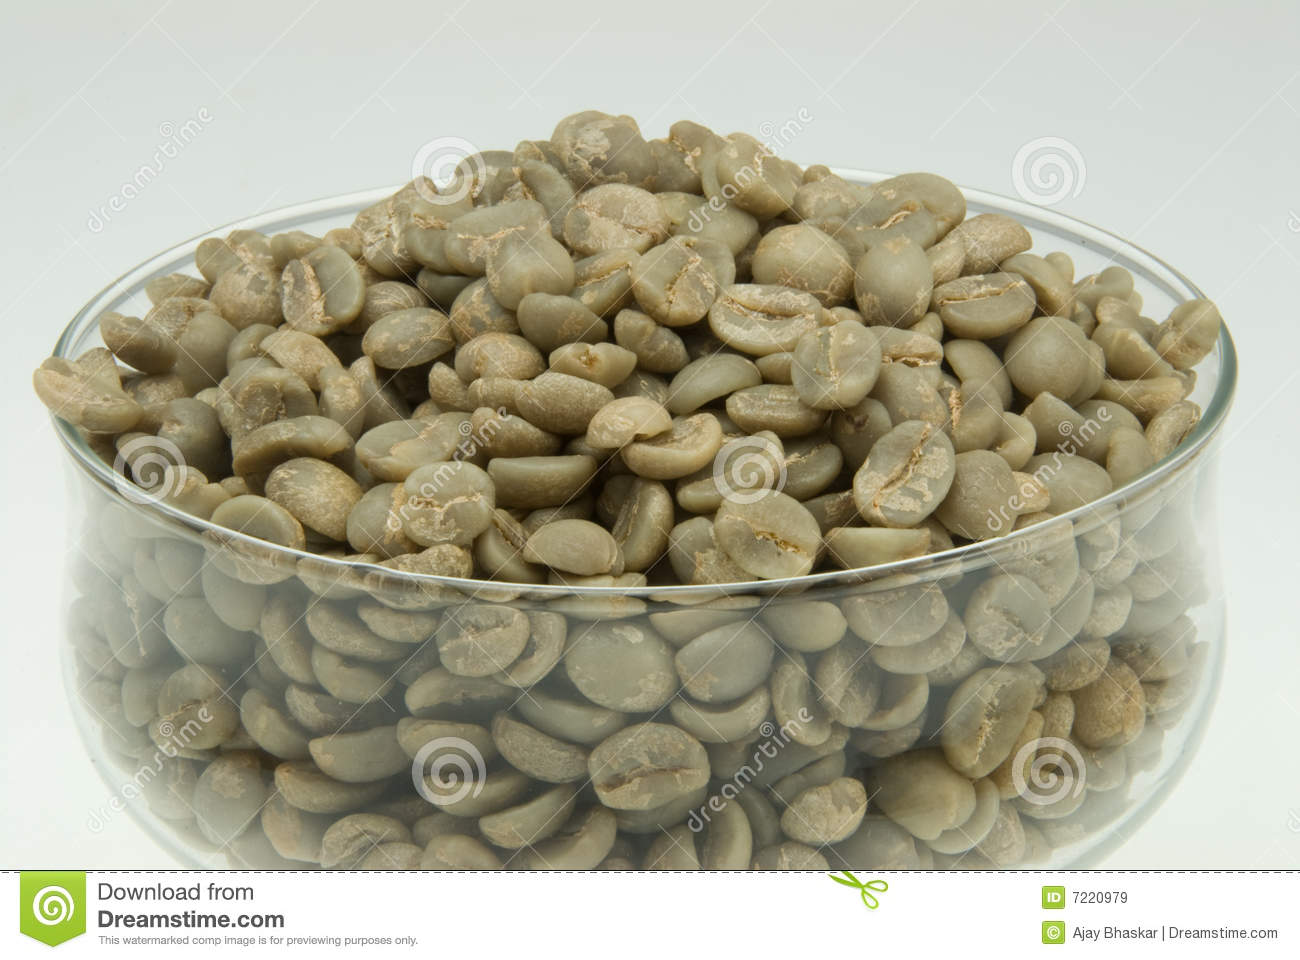 Unroasted Organic Arabica Coffee Beans Unroasted Coffee Beans Royalty Free Stock Images Image